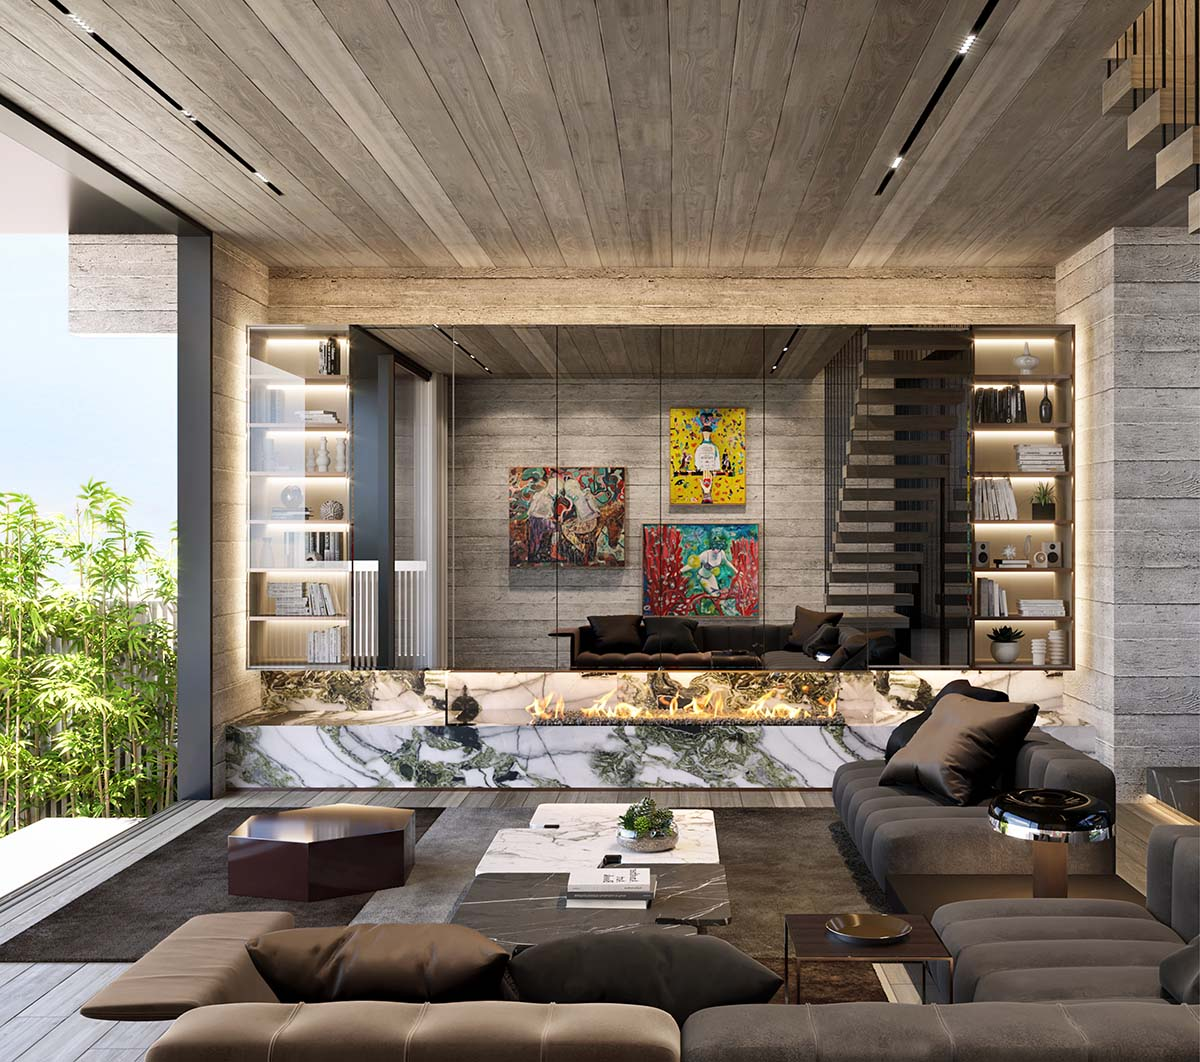 Brutalist living room with firepite and artwork reflecting on the mirror